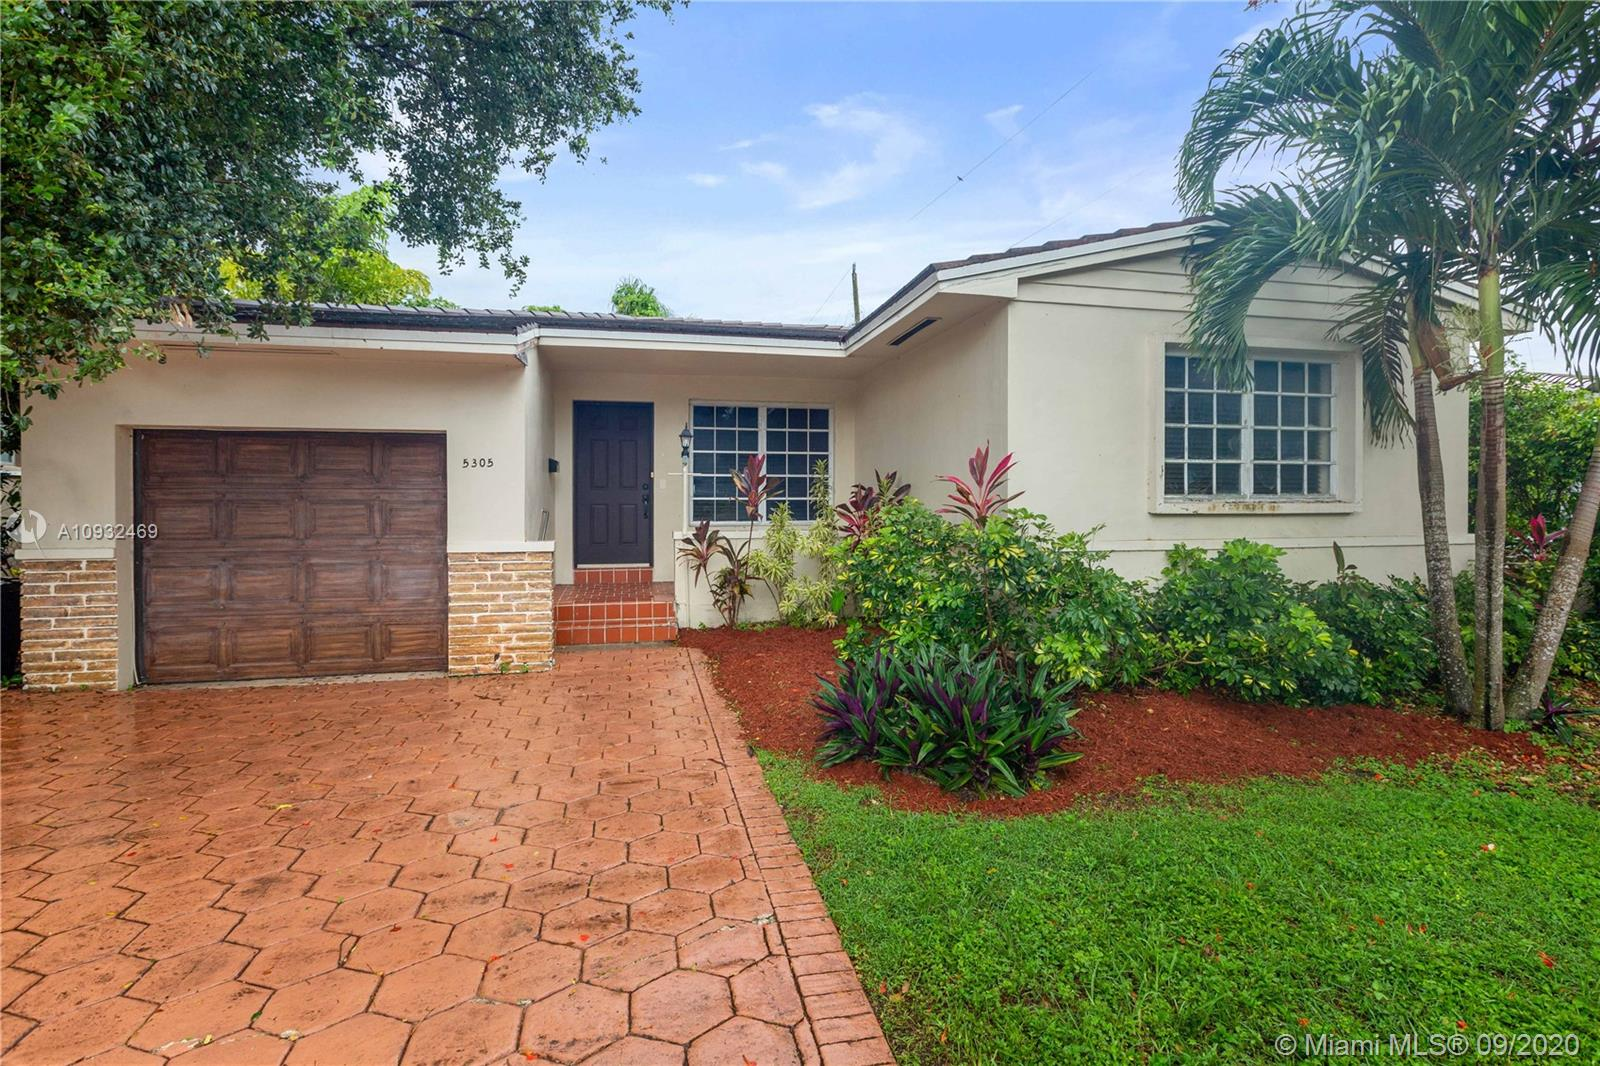 5305  Red Rd  For Sale A10932469, FL